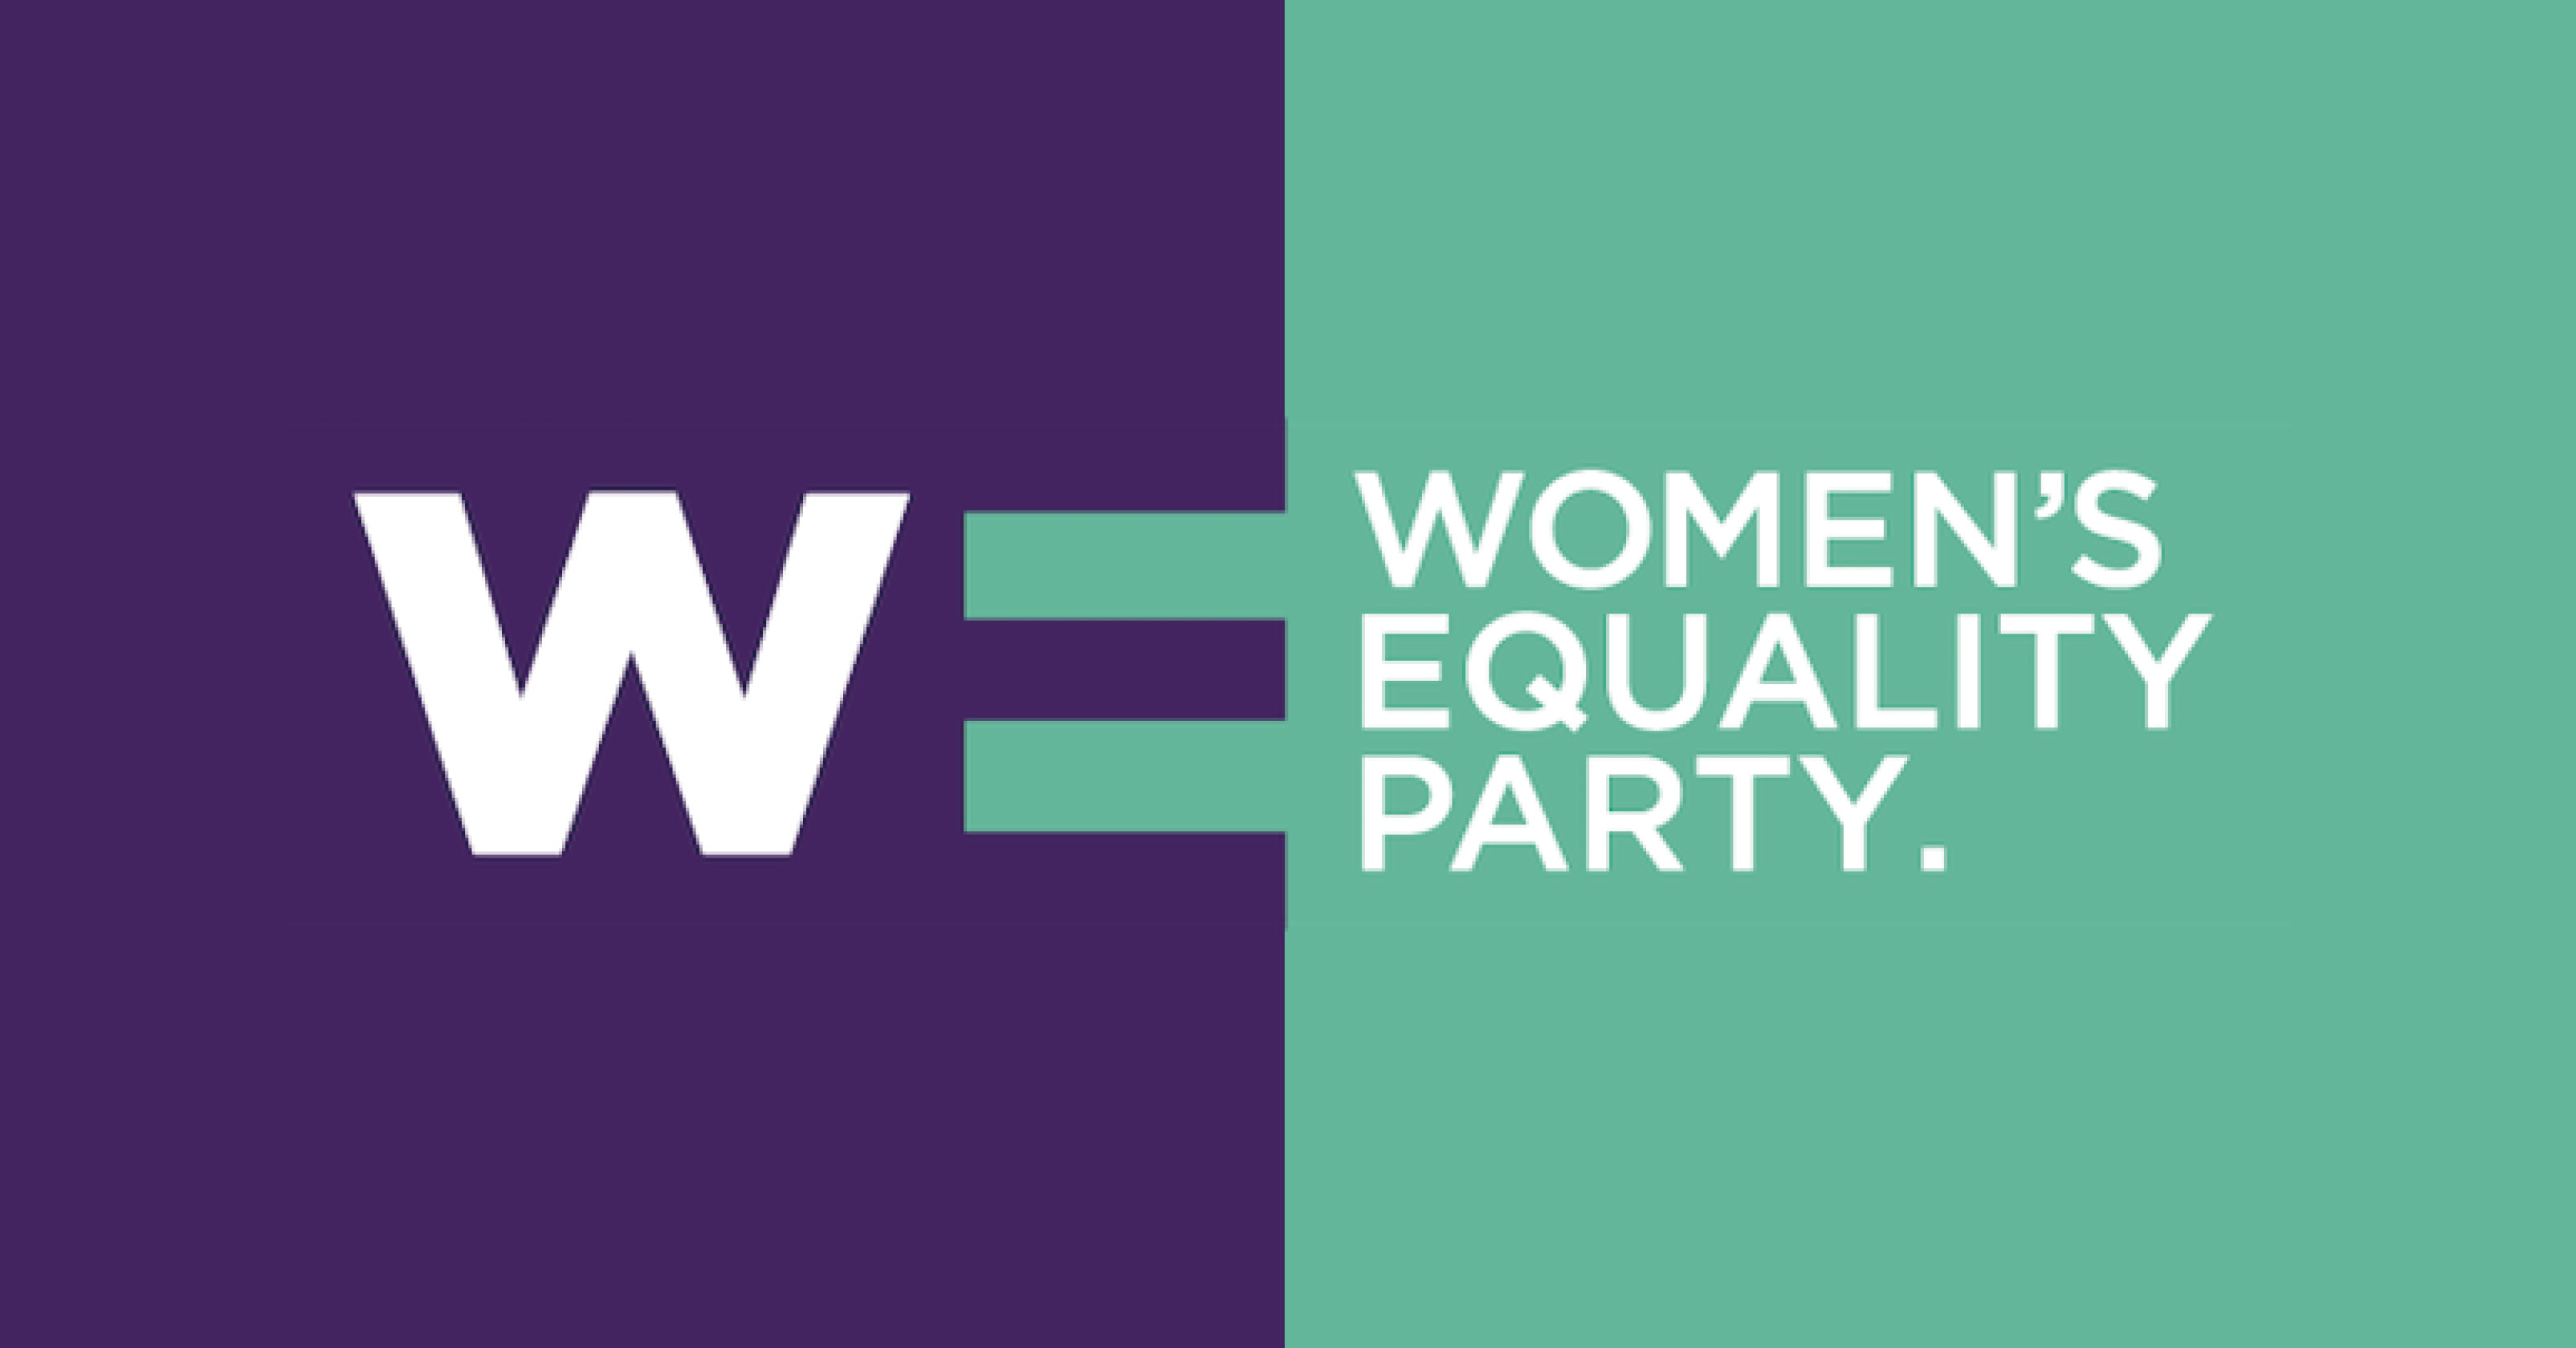 Women's Equality Party logo